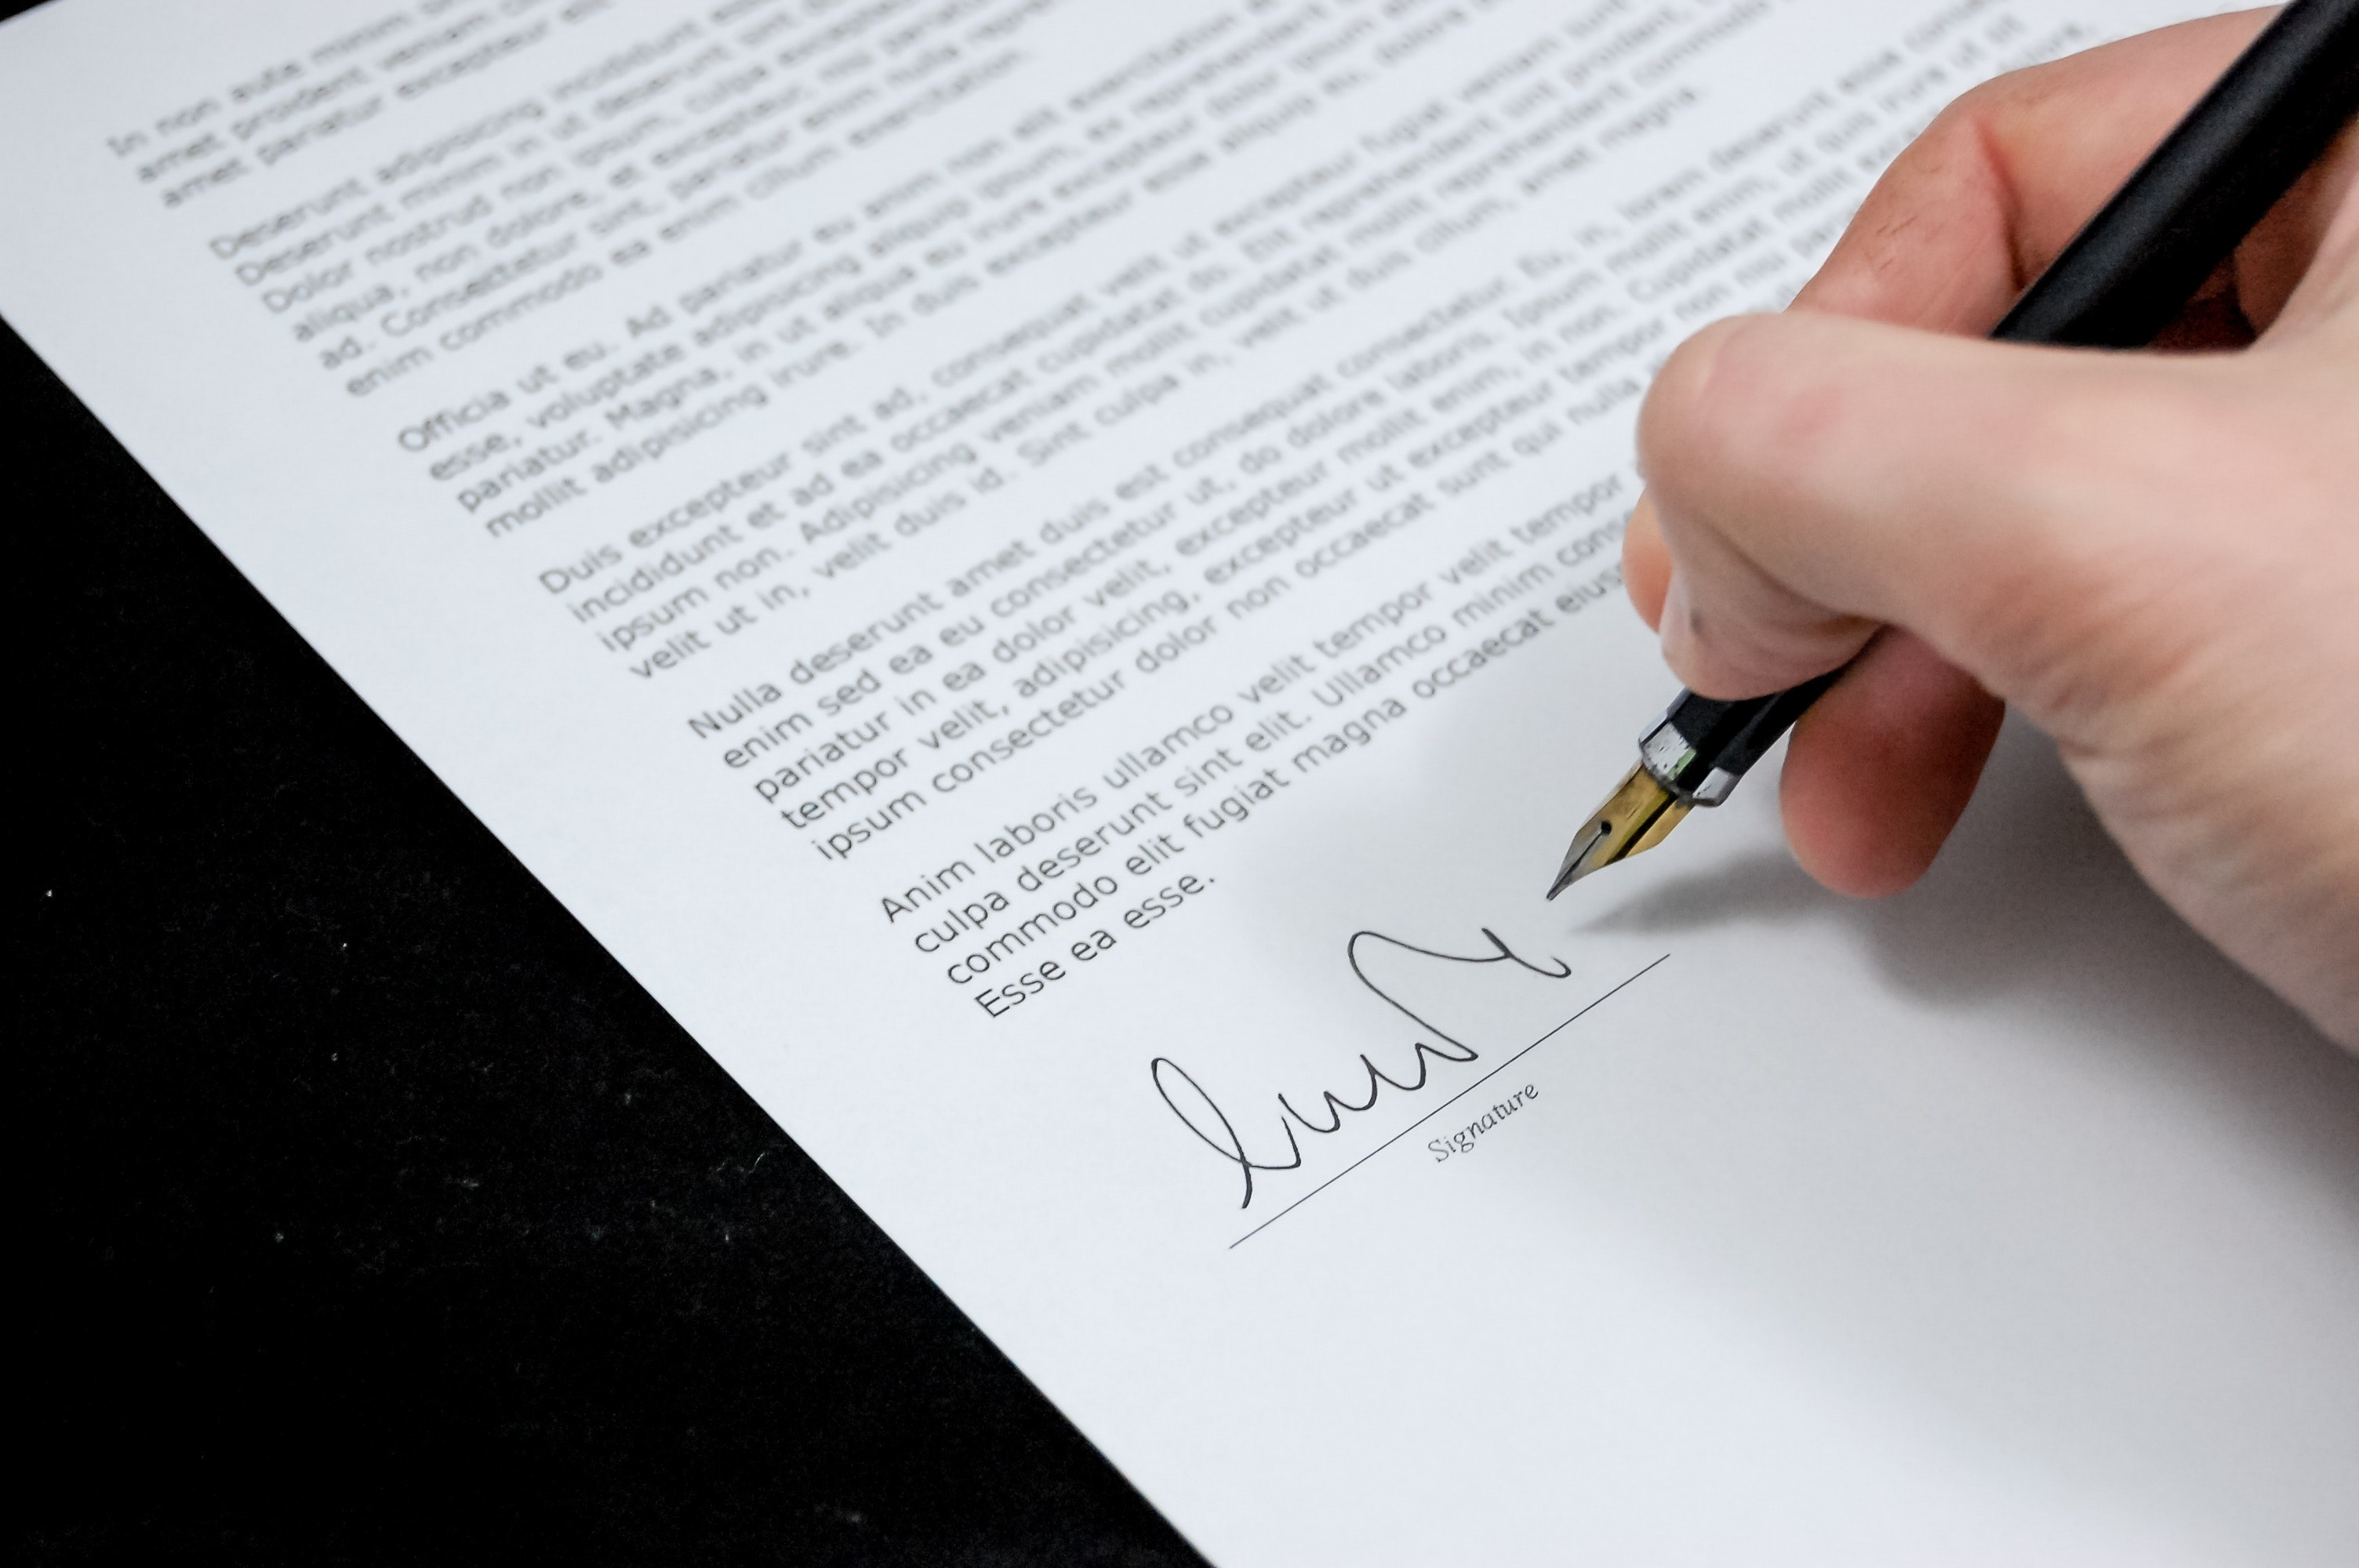 How to add a signature to your blog post